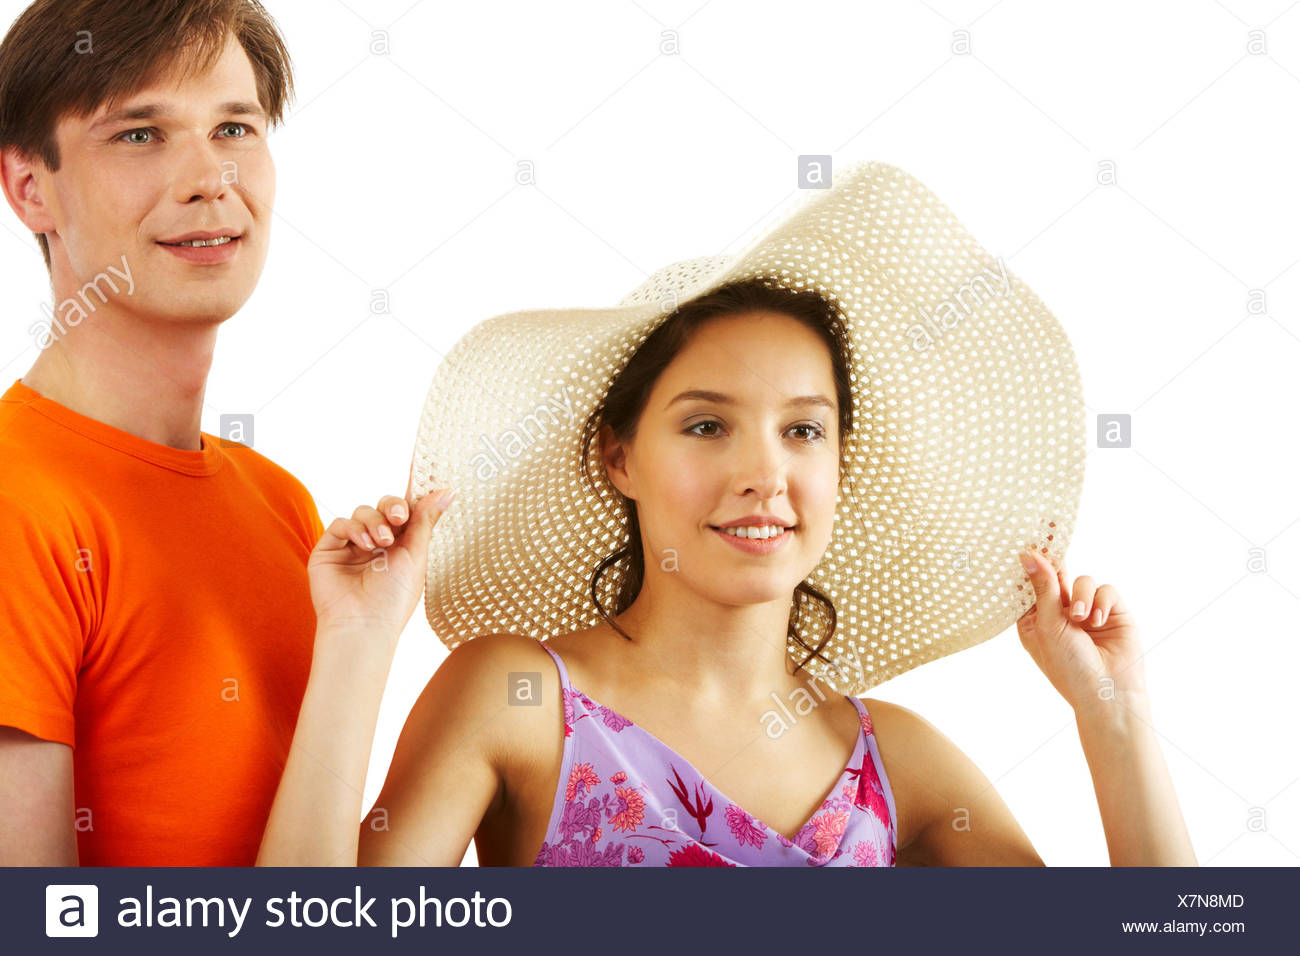 guy, woman, humans, human beings, people, folk, persons, human, human being, - Stock Image